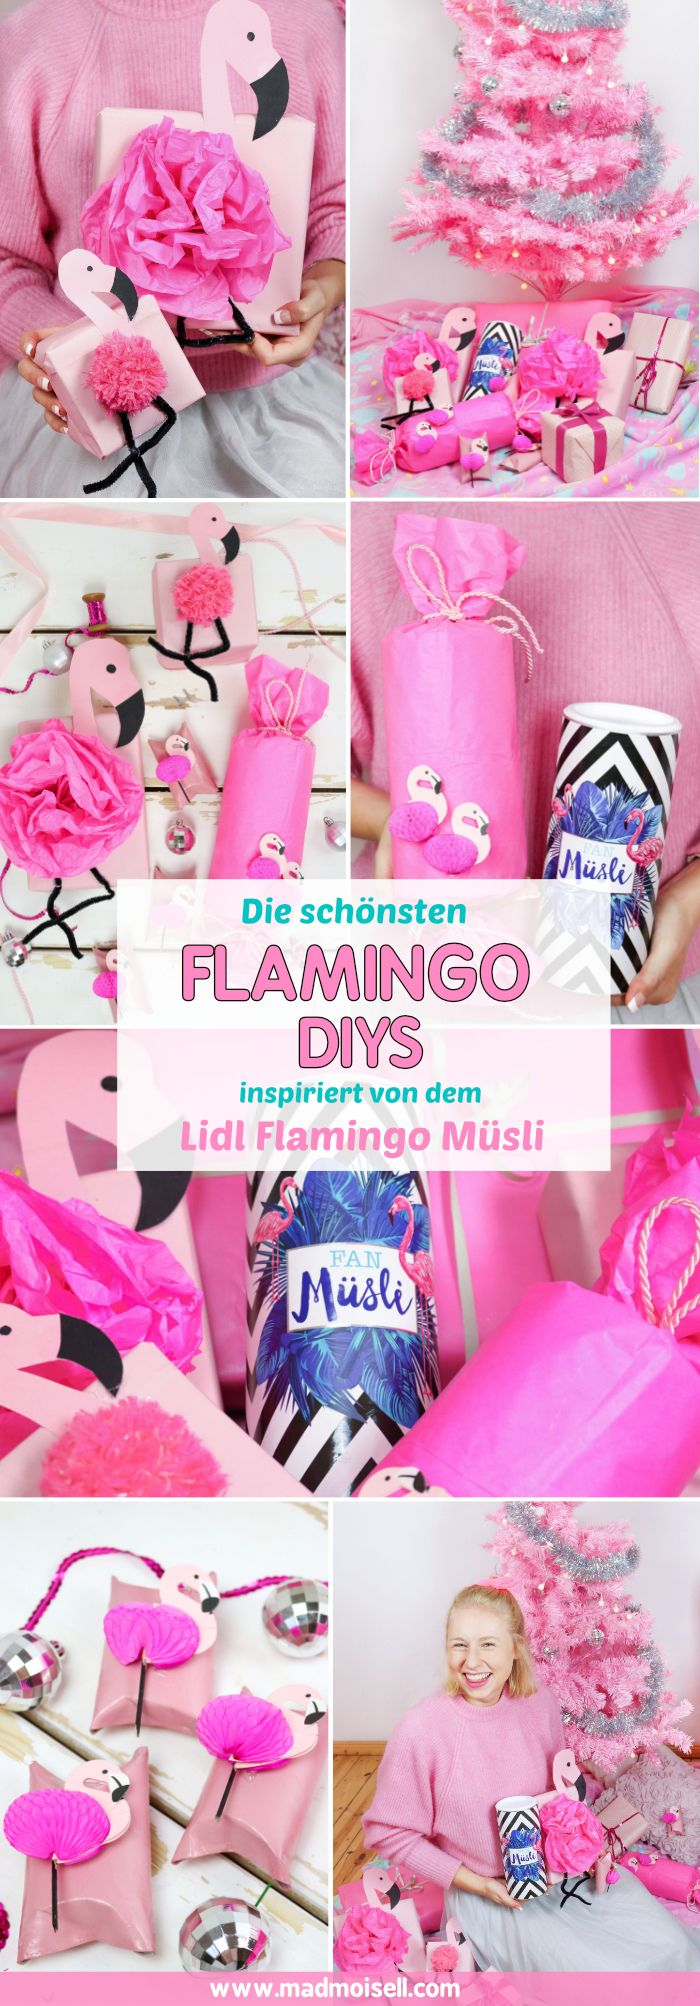 25 unique flamingos ideas on pinterest pink flamingos birds flamingo and pink flamingos. Black Bedroom Furniture Sets. Home Design Ideas